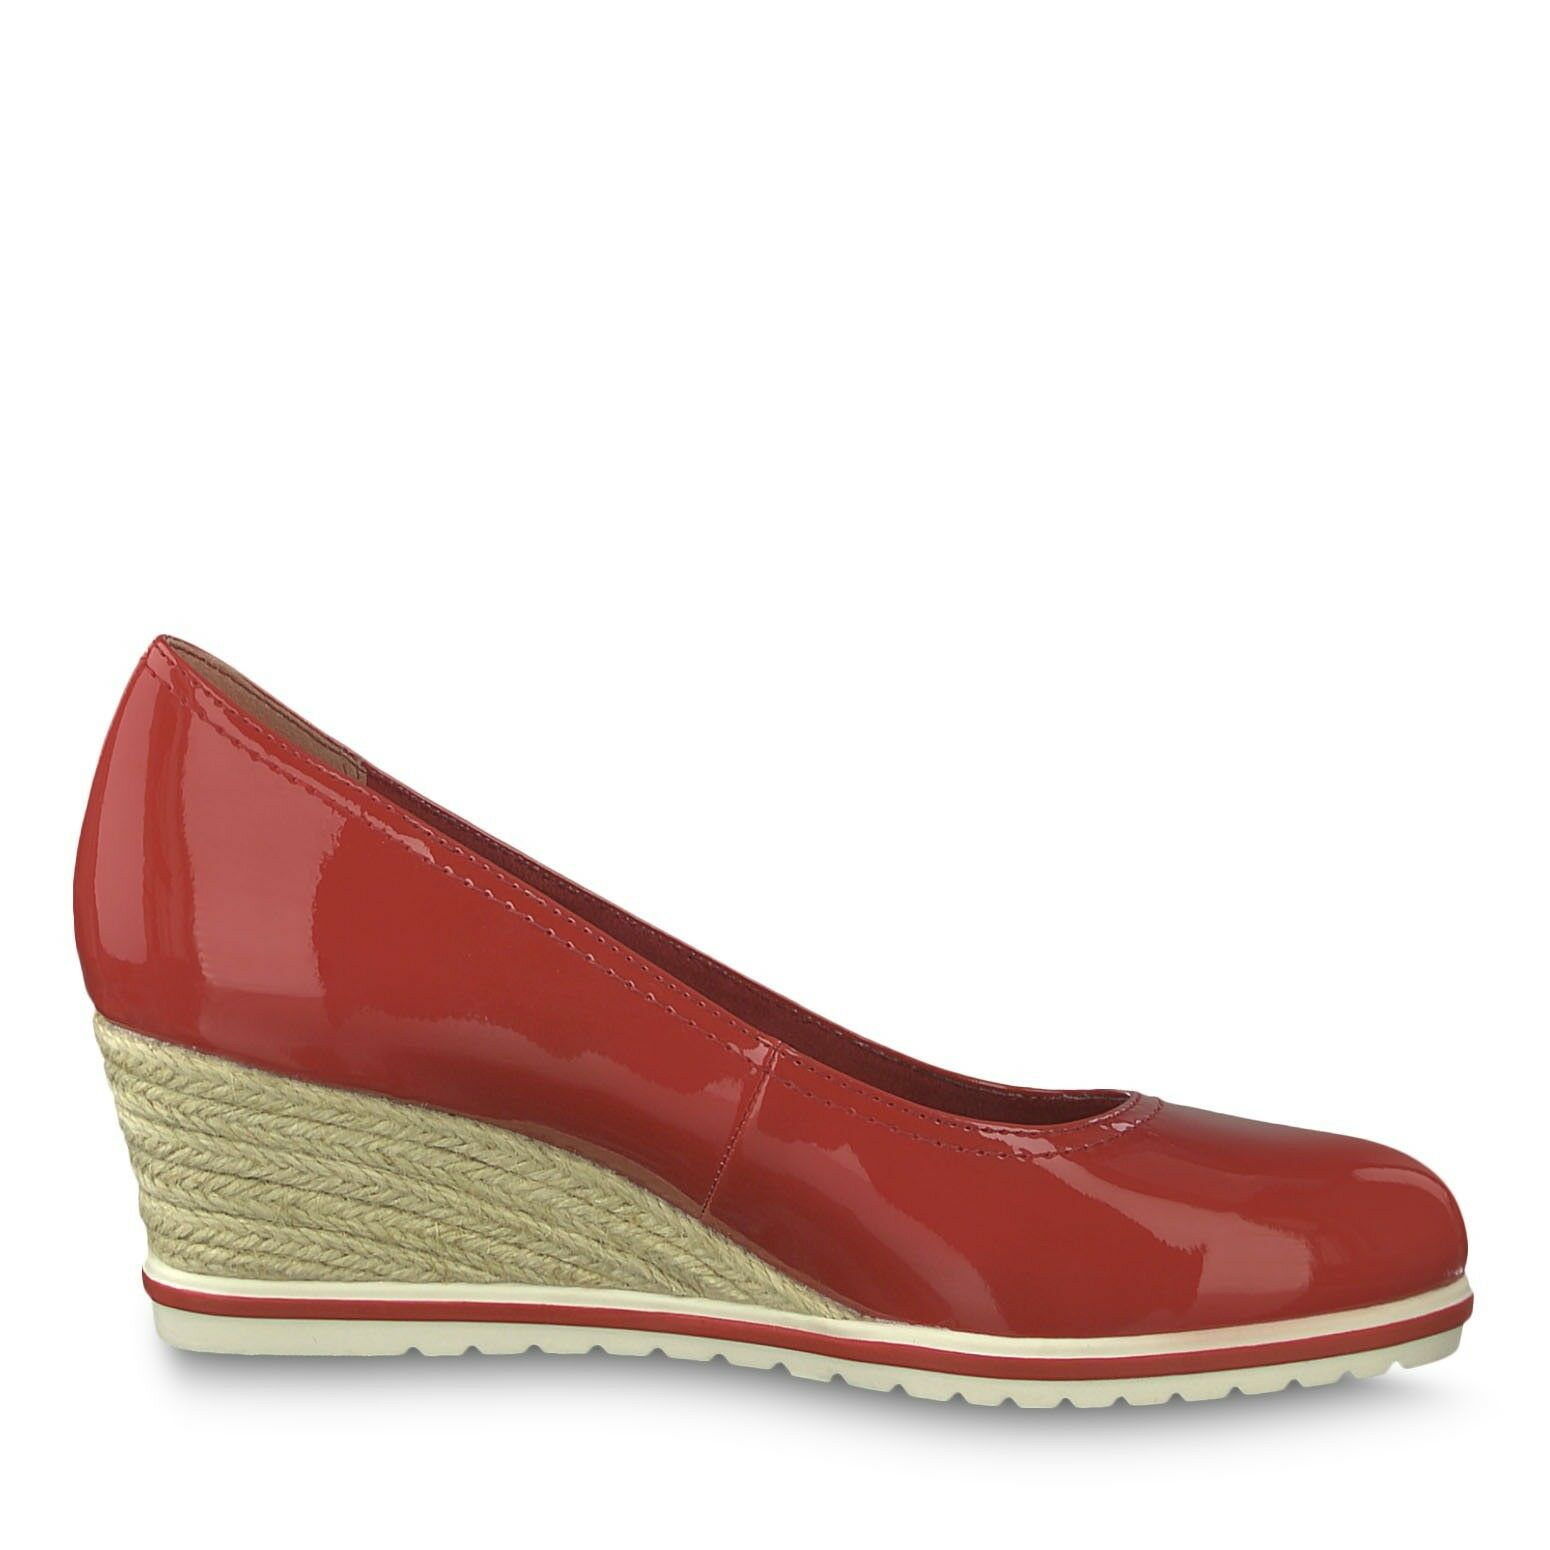 Tamaris 22441 Patent Espadrille Wedge shoes With With With Touch It Insoles Red Or Navy 627217